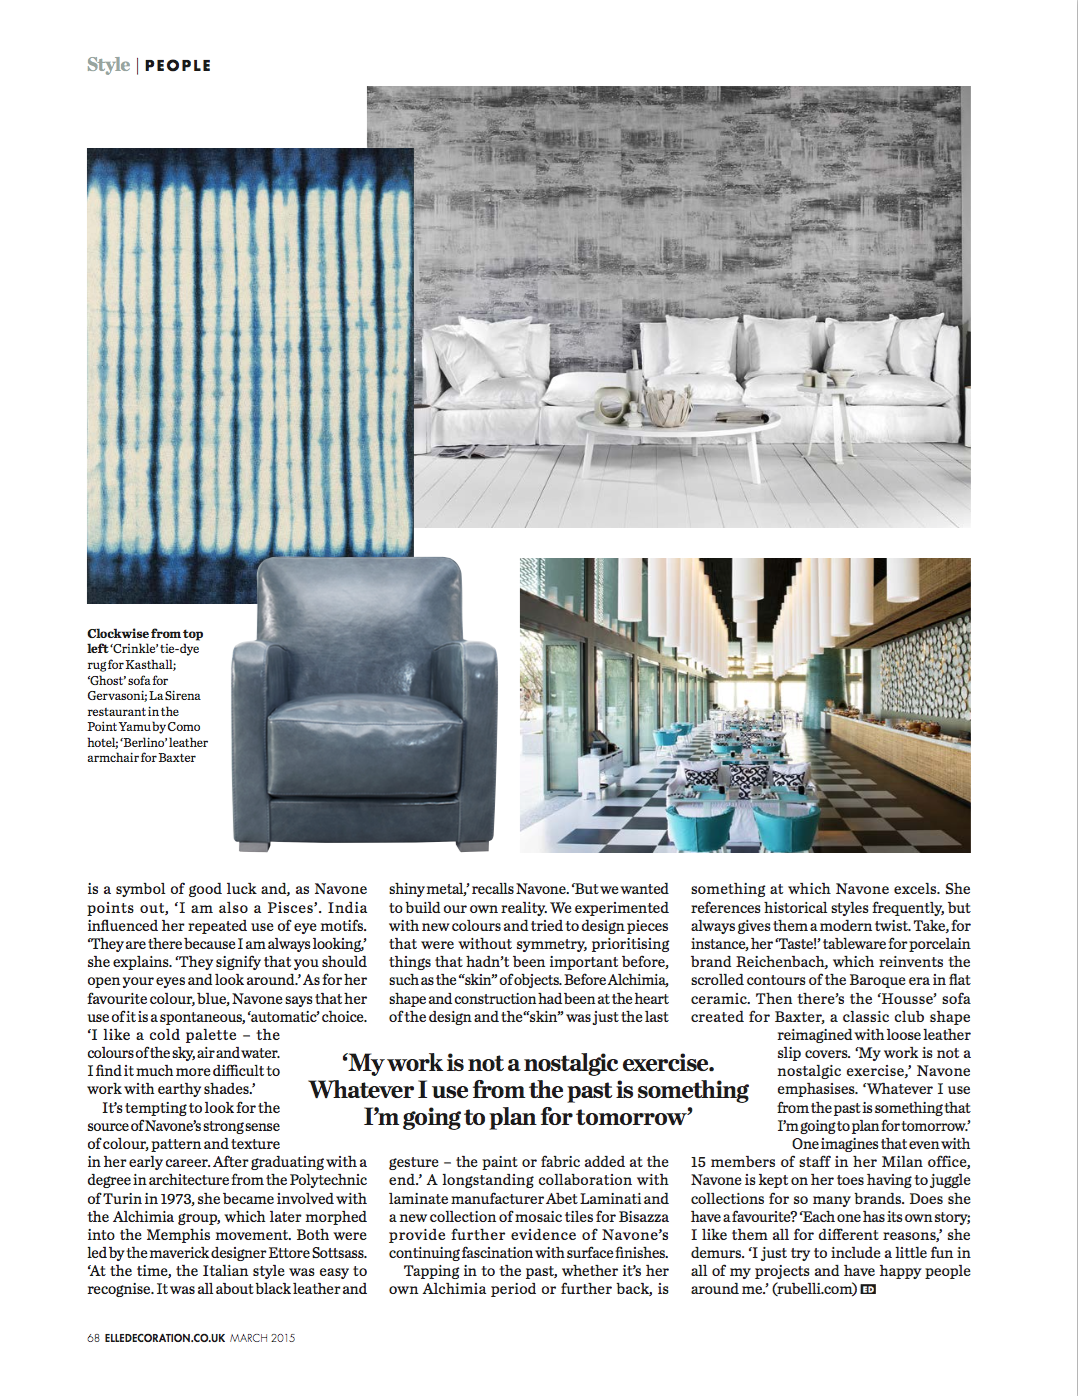 Paola Navone Elle interview